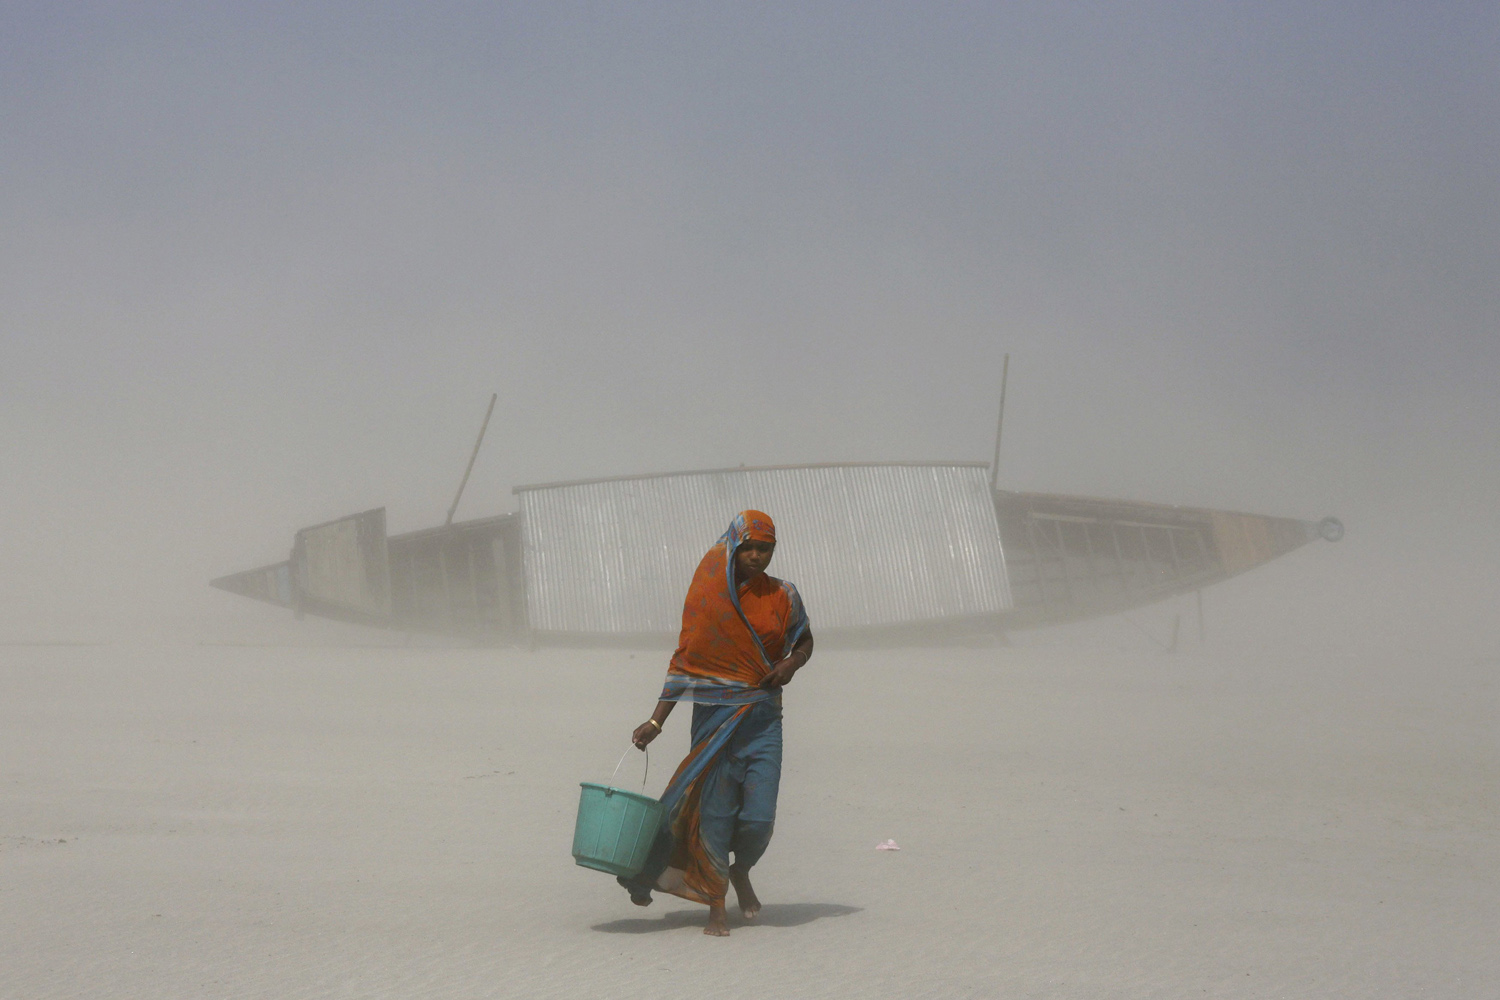 An Indian woman carries a bucket filled with drinking water as she walks on dry mud against blowing sand, along the Brahmaputra river in Gauhati, India, March 21, 2014.